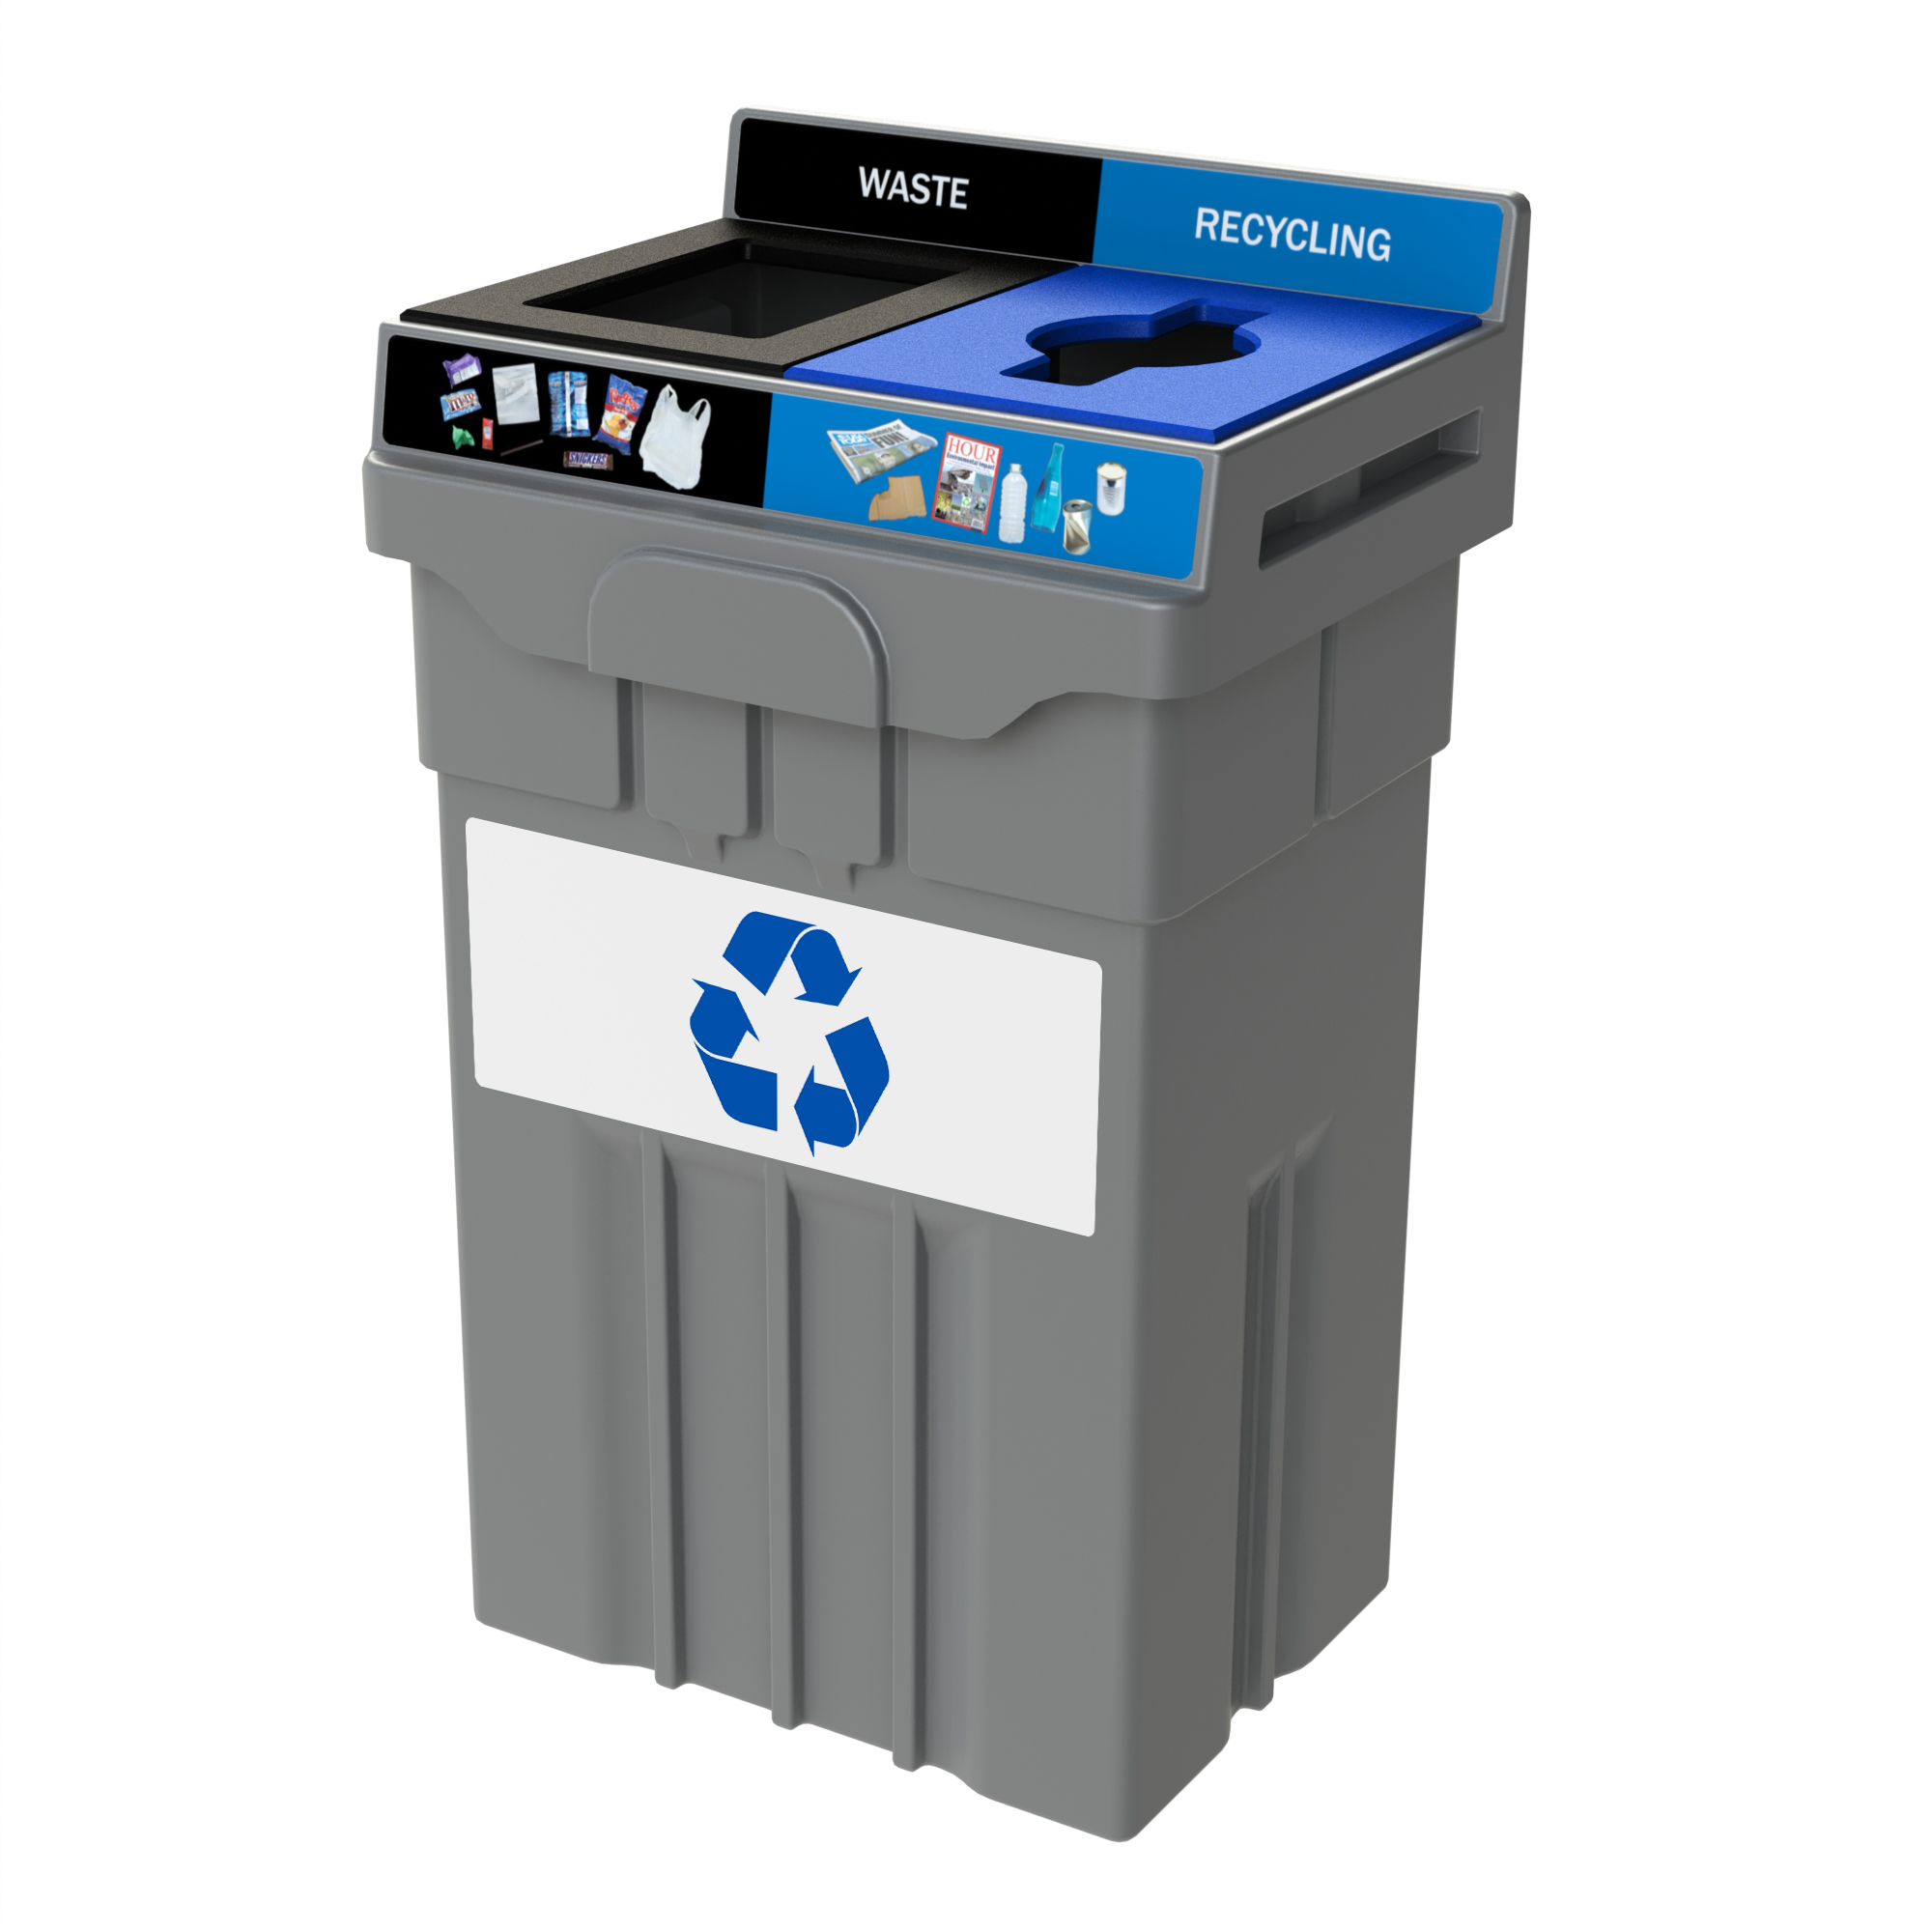 36 Gallon Waste and Recycling Bin- CleanRiver